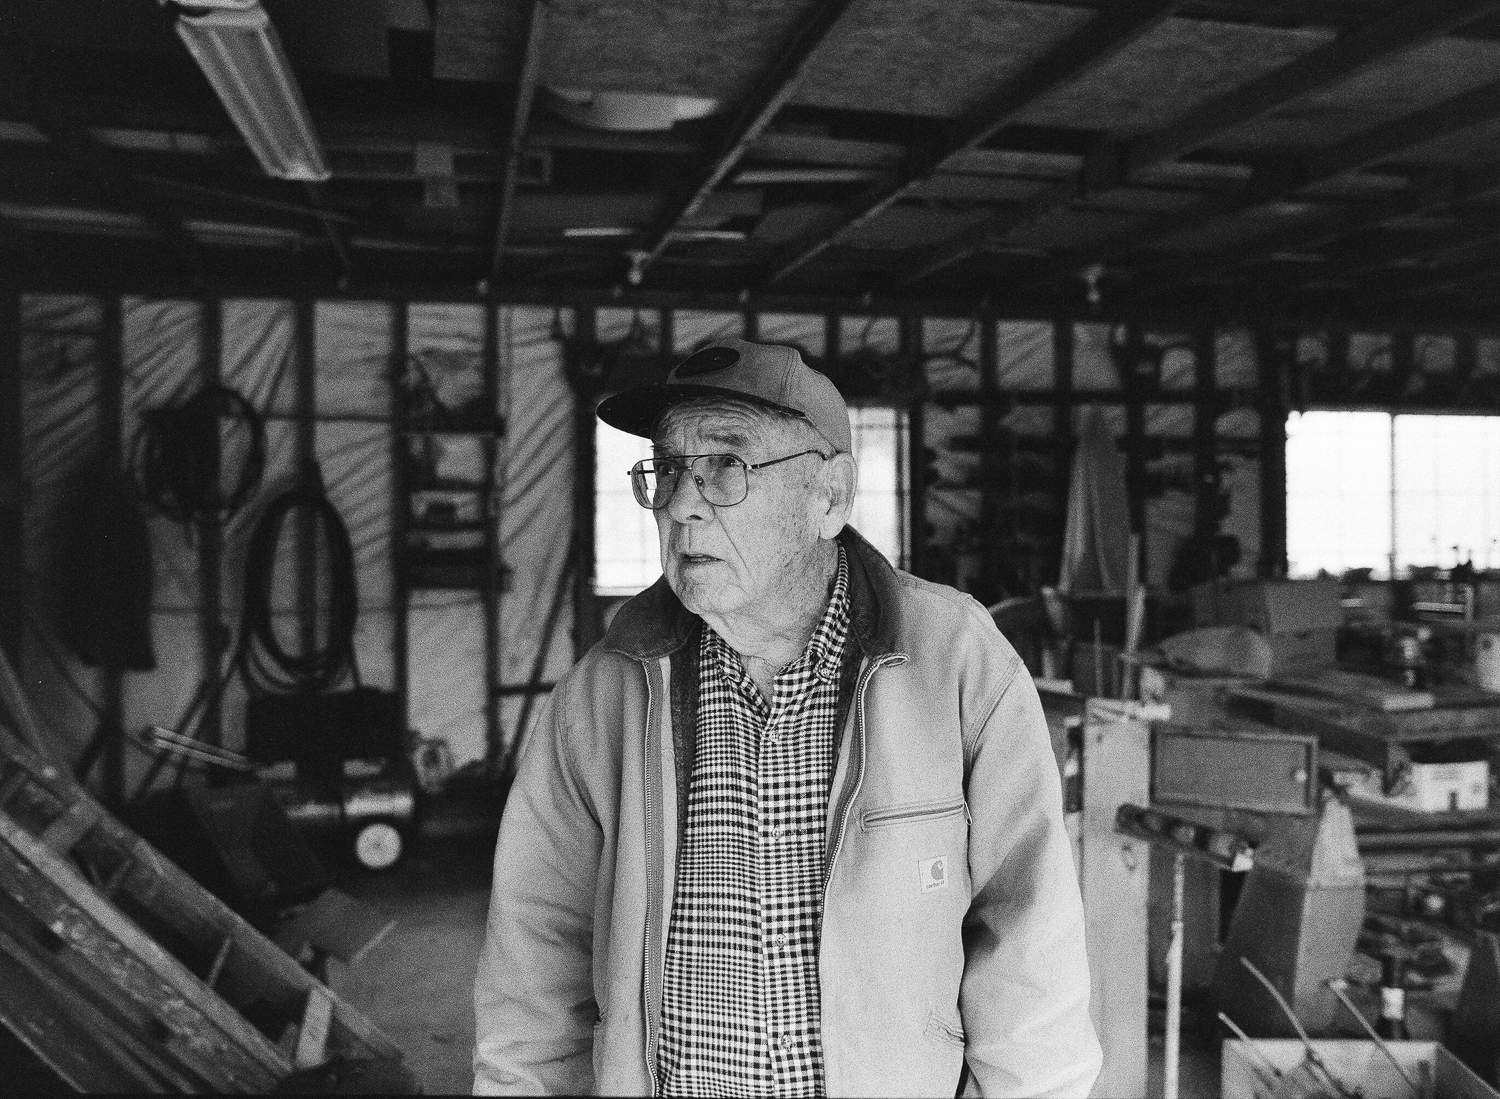 Portrait of grandpa in his work jacket